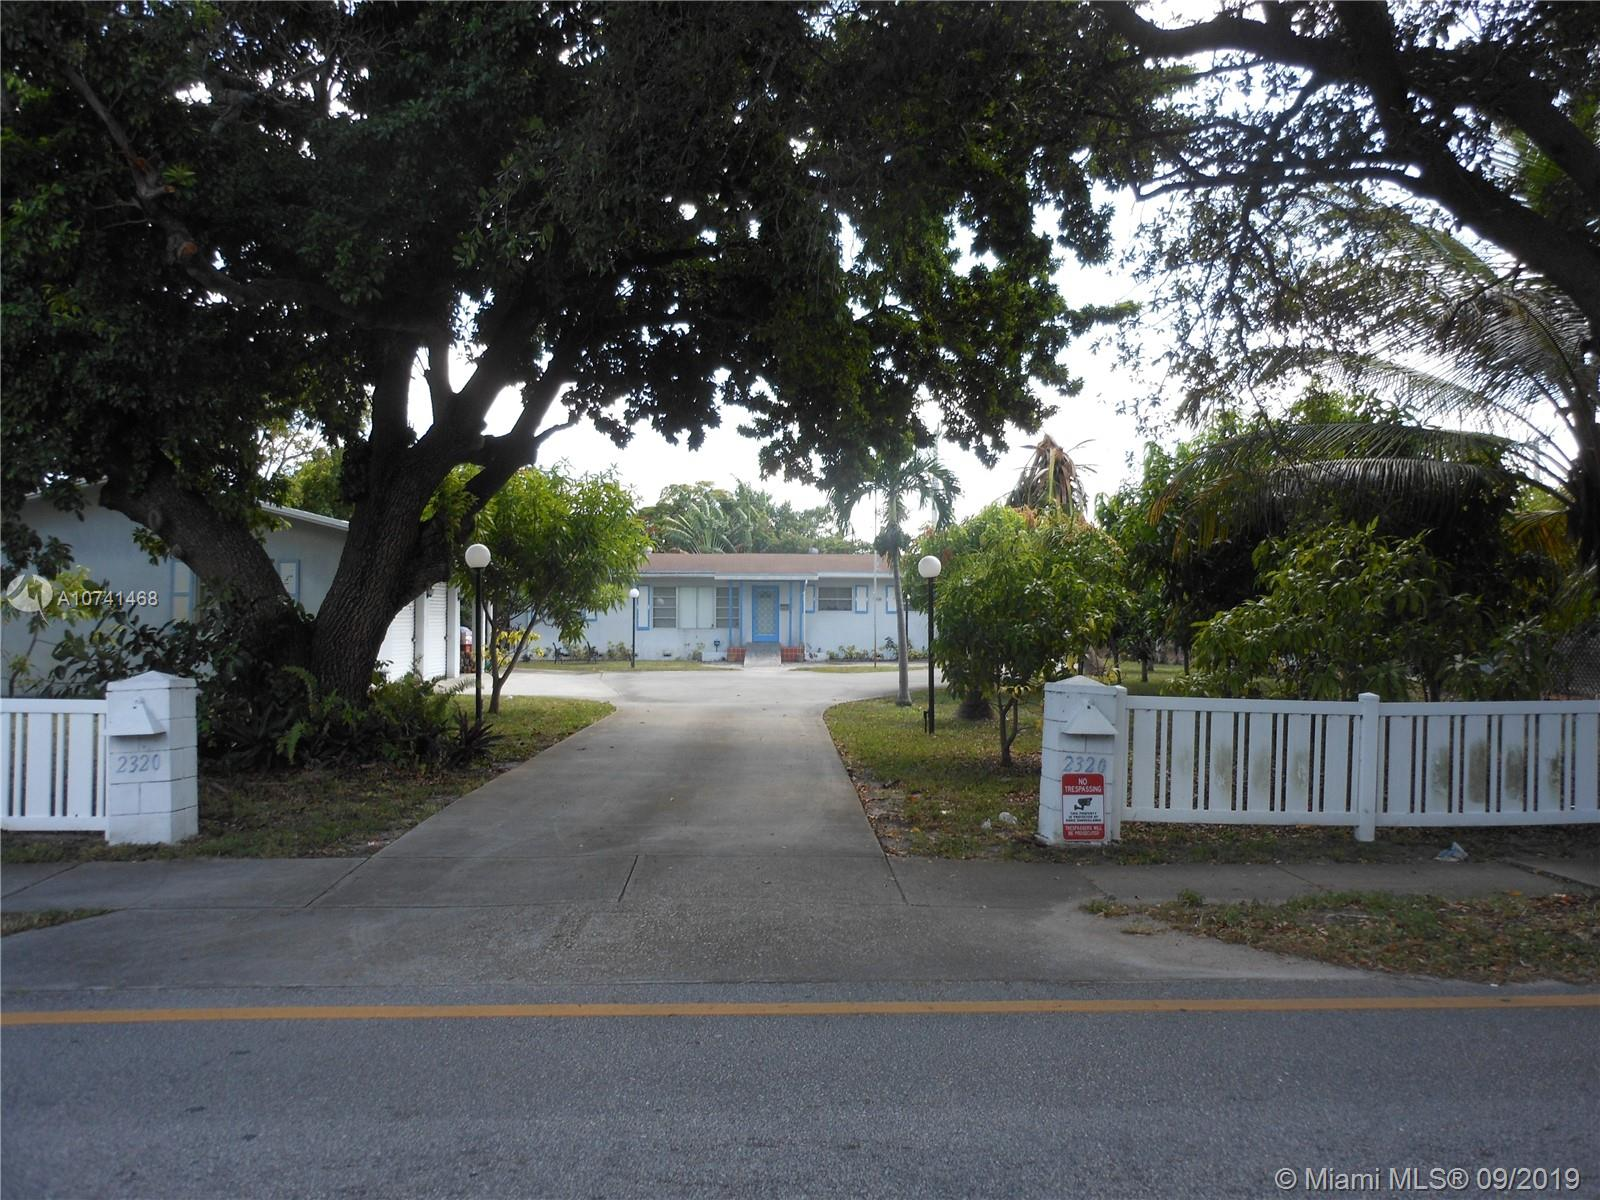 *****LAND FOR SALE 1/2 ACRE MULTI FAMILY NEGOTIABLE A MUCH SOUGHT AFTER DOUBLE LOT *****DO NOT BOTHER TENANTS***